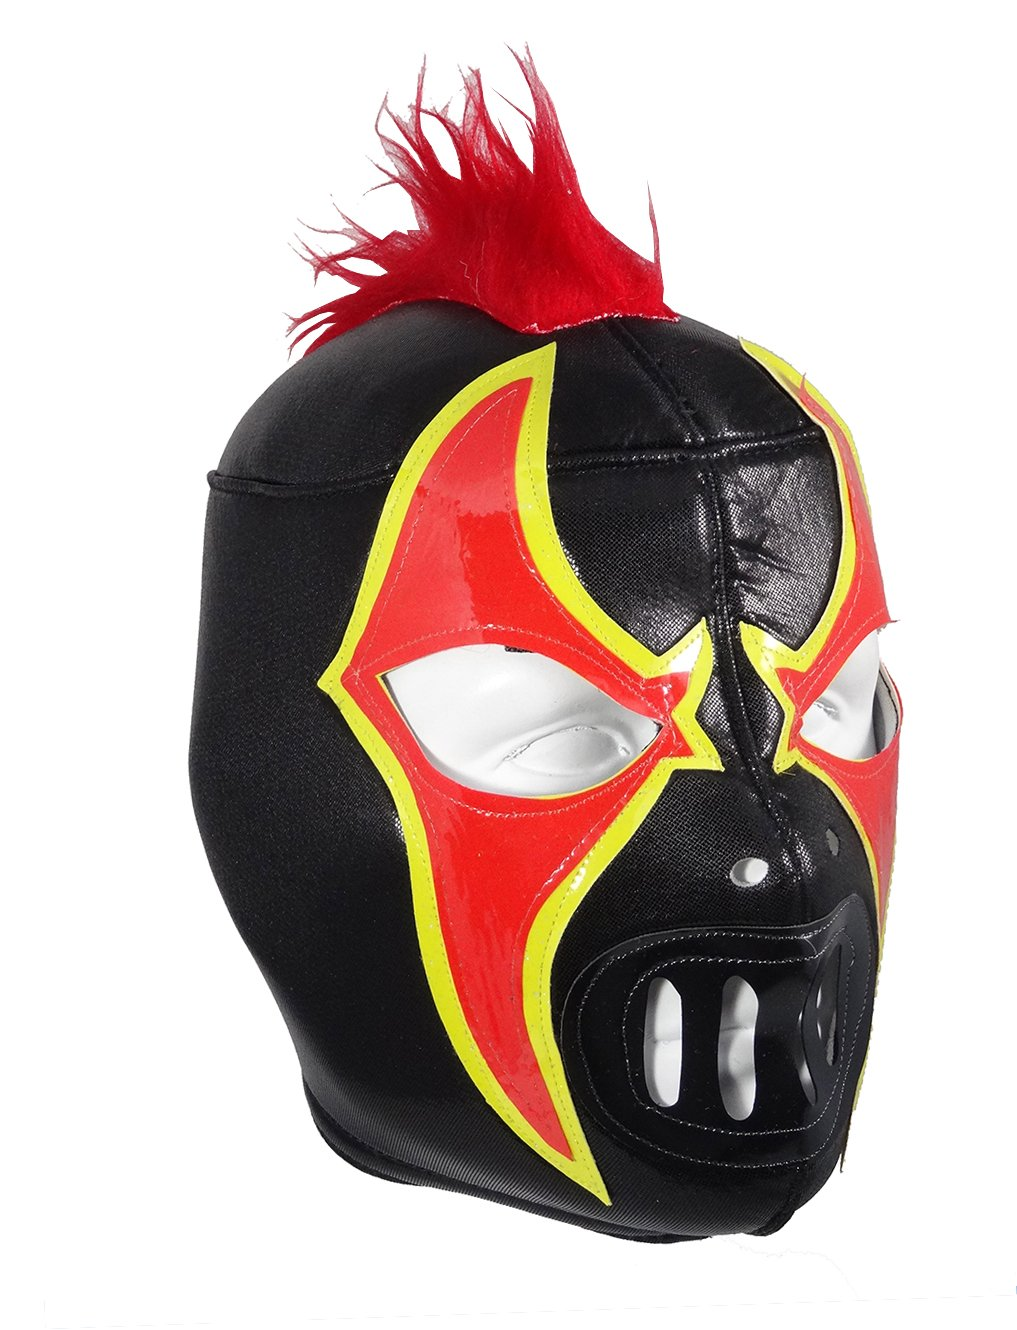 CRAZY CLOWN Adult Lucha Libre Wrestling Mask (pro-fit) Costume Wear - Black/Red